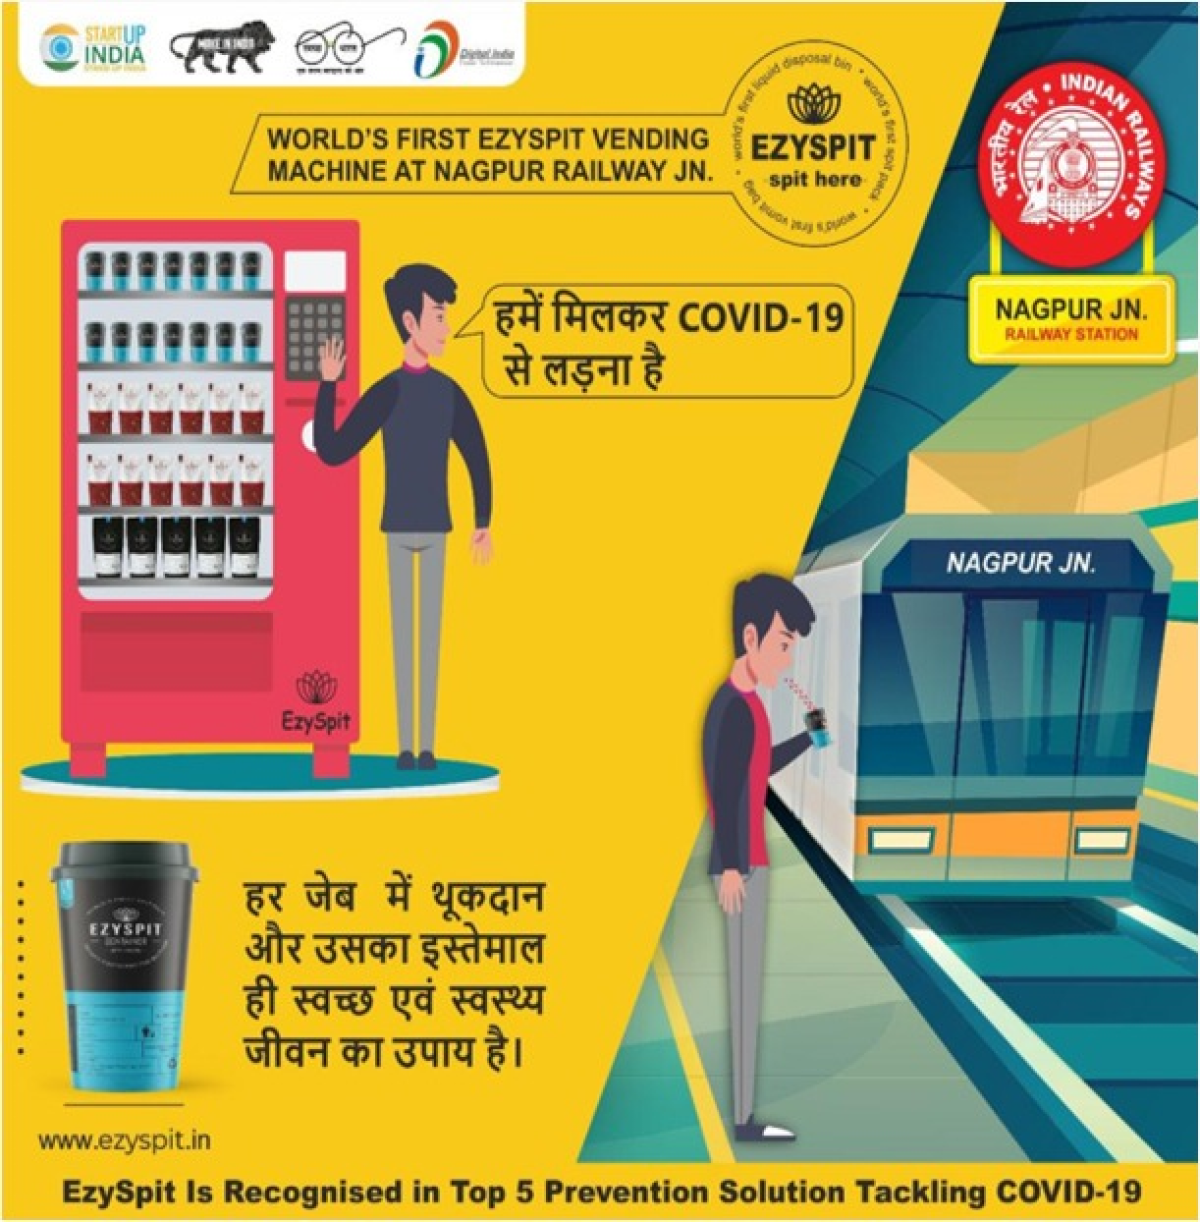 Central Railway's initiatives in making train journeys safer, more comfortable